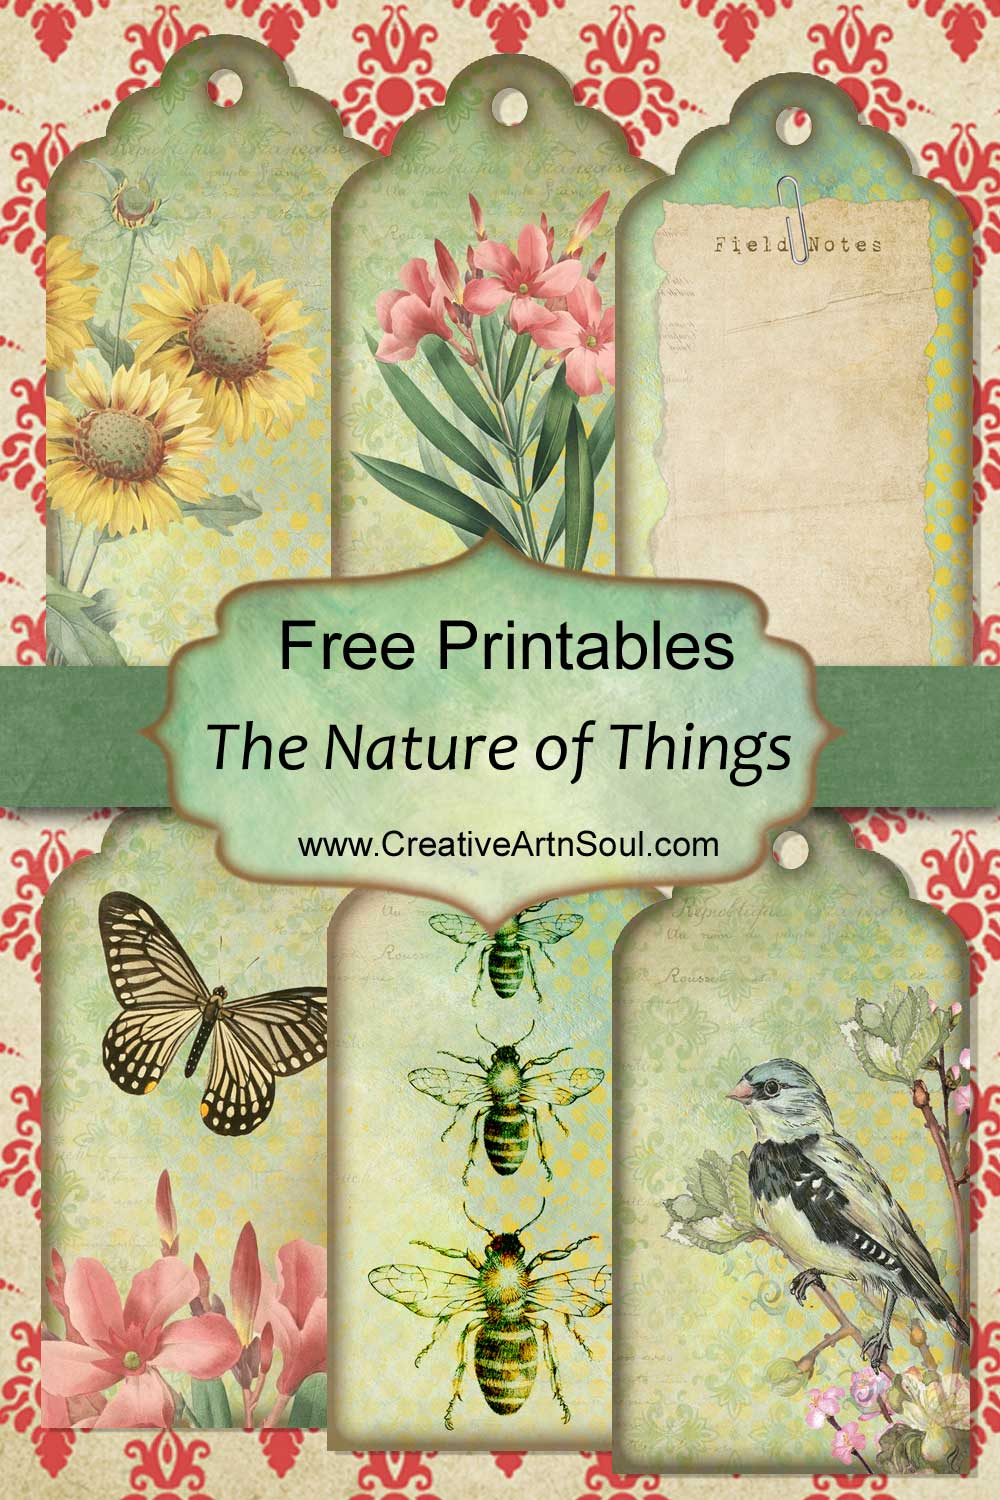 The Nature of Things Free Printables